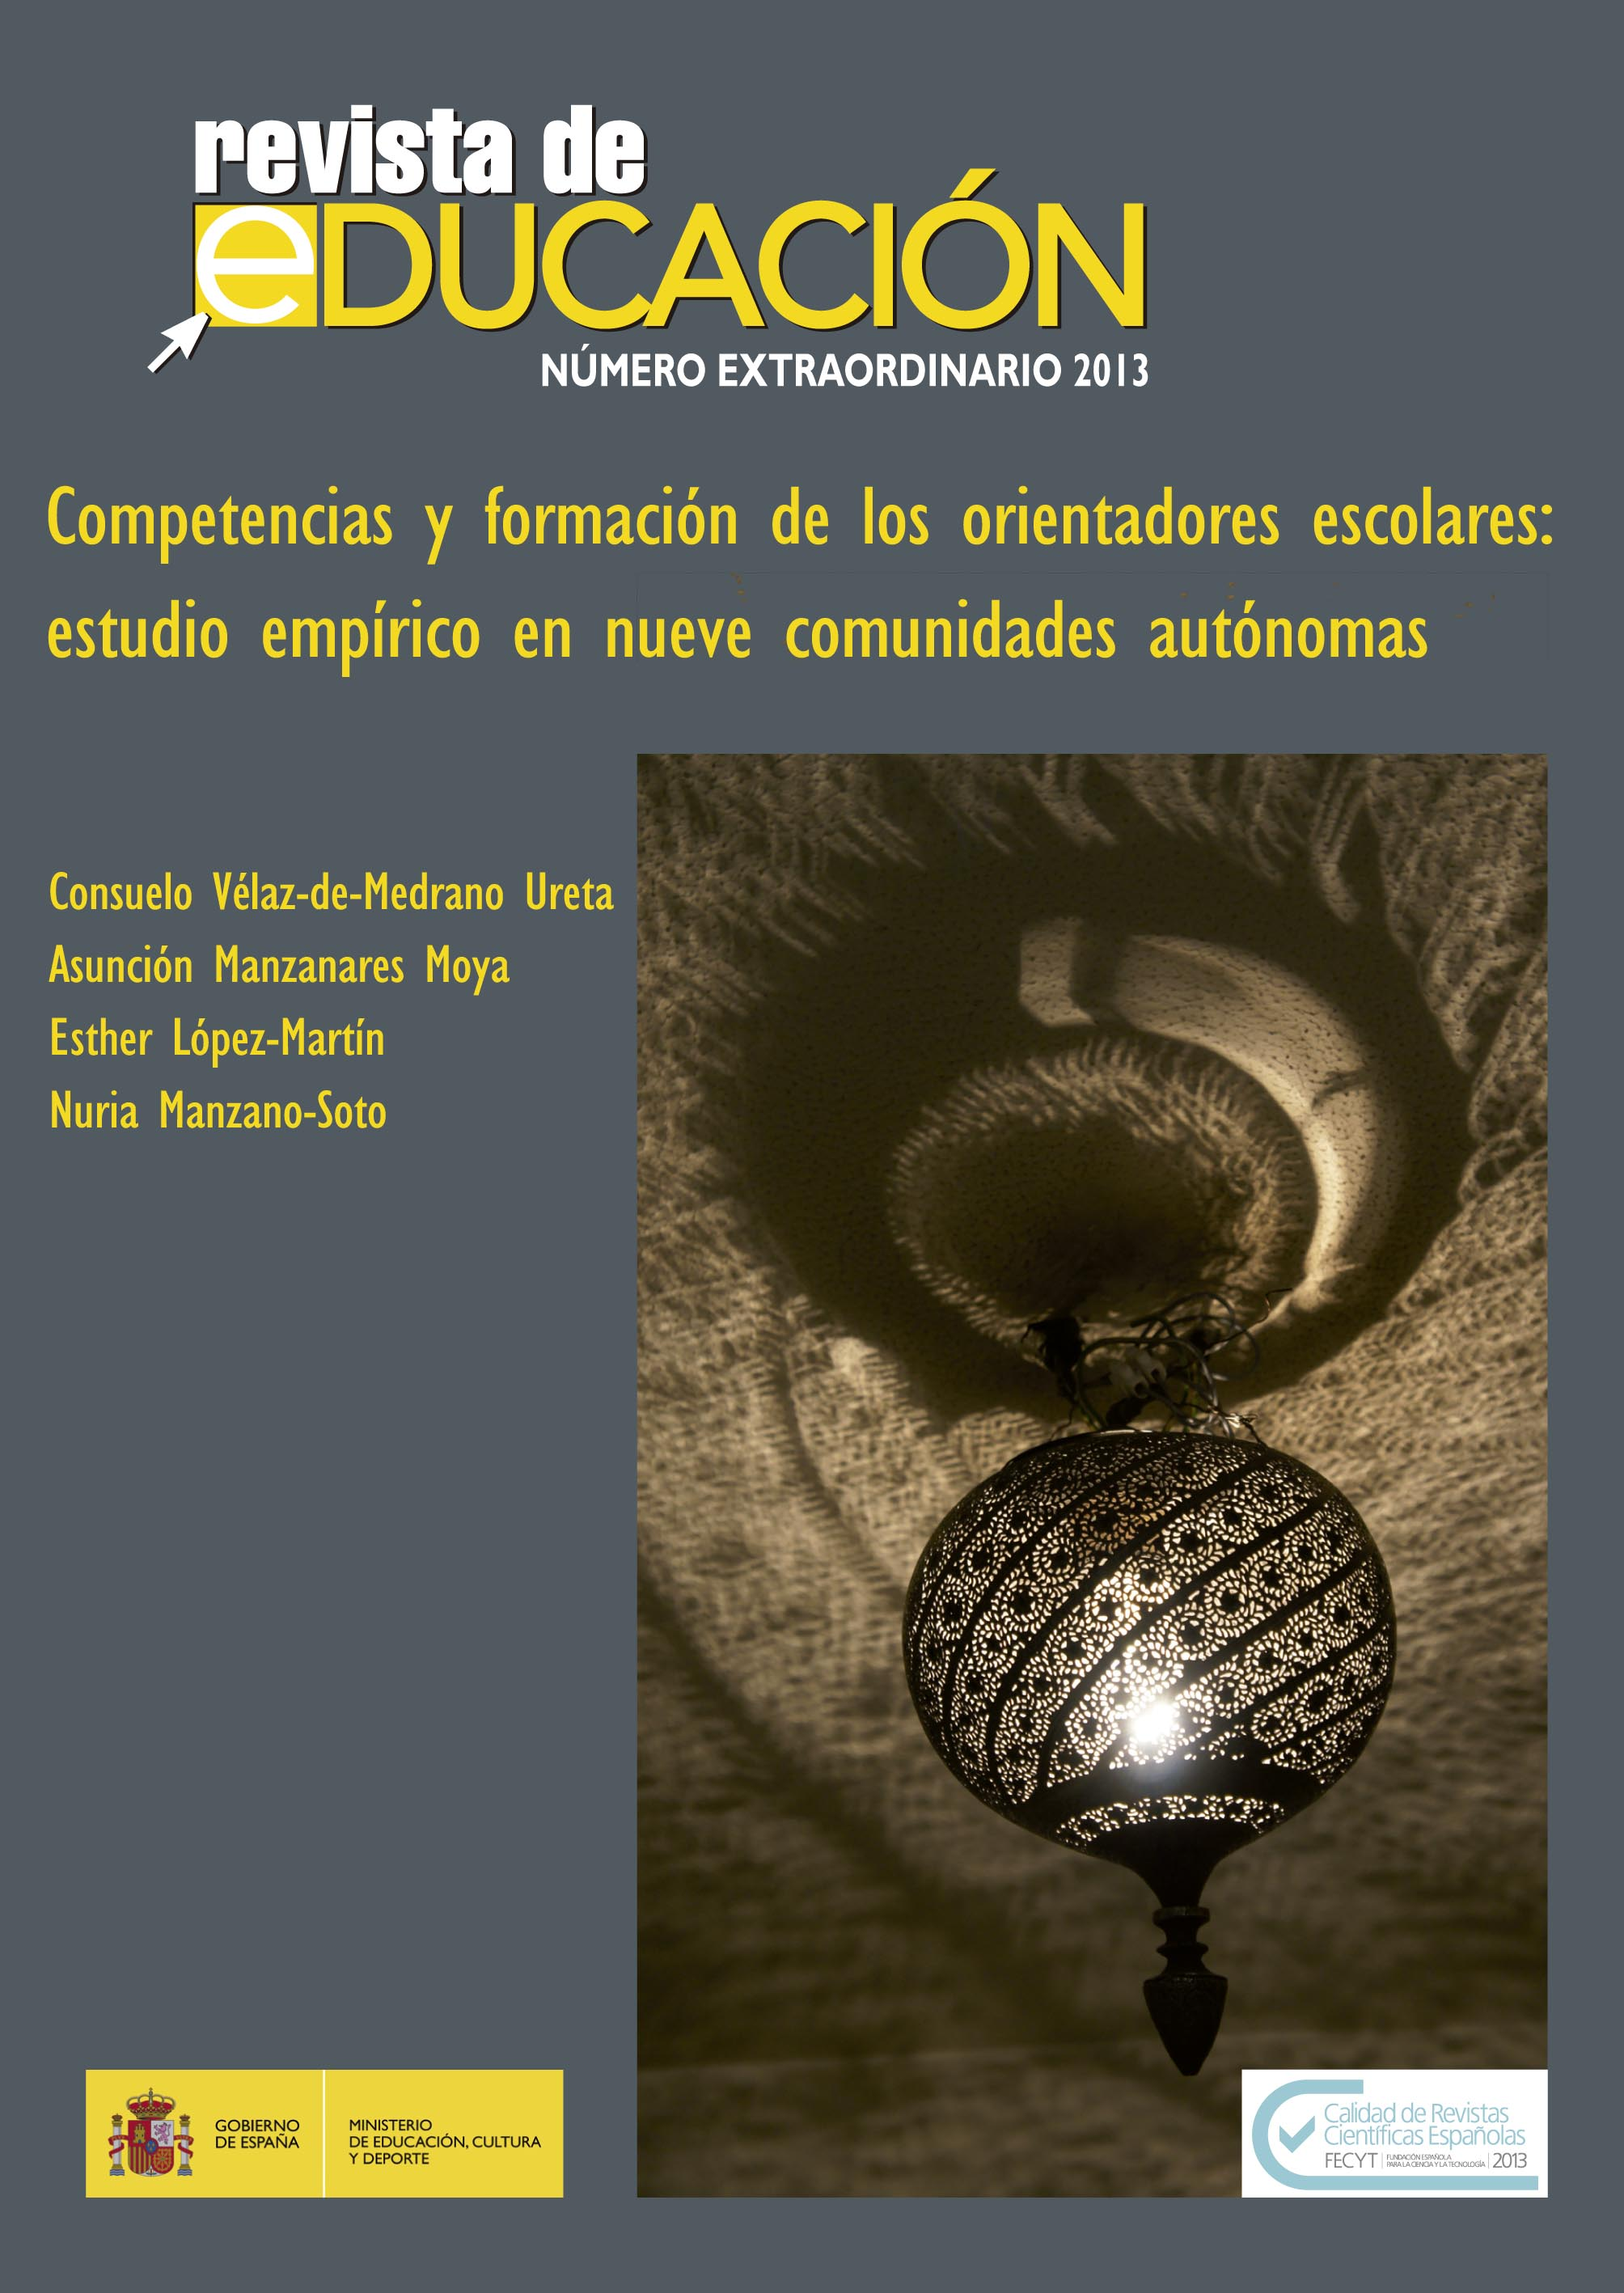 competencias-y-formacion-de-los-orientadores-escolares-estudio-empirico-en-nueve-comunidades-autonomas--school-counsellor-competences-and-training-an-empirical-study-in-nine-spanish-autonomous-communities